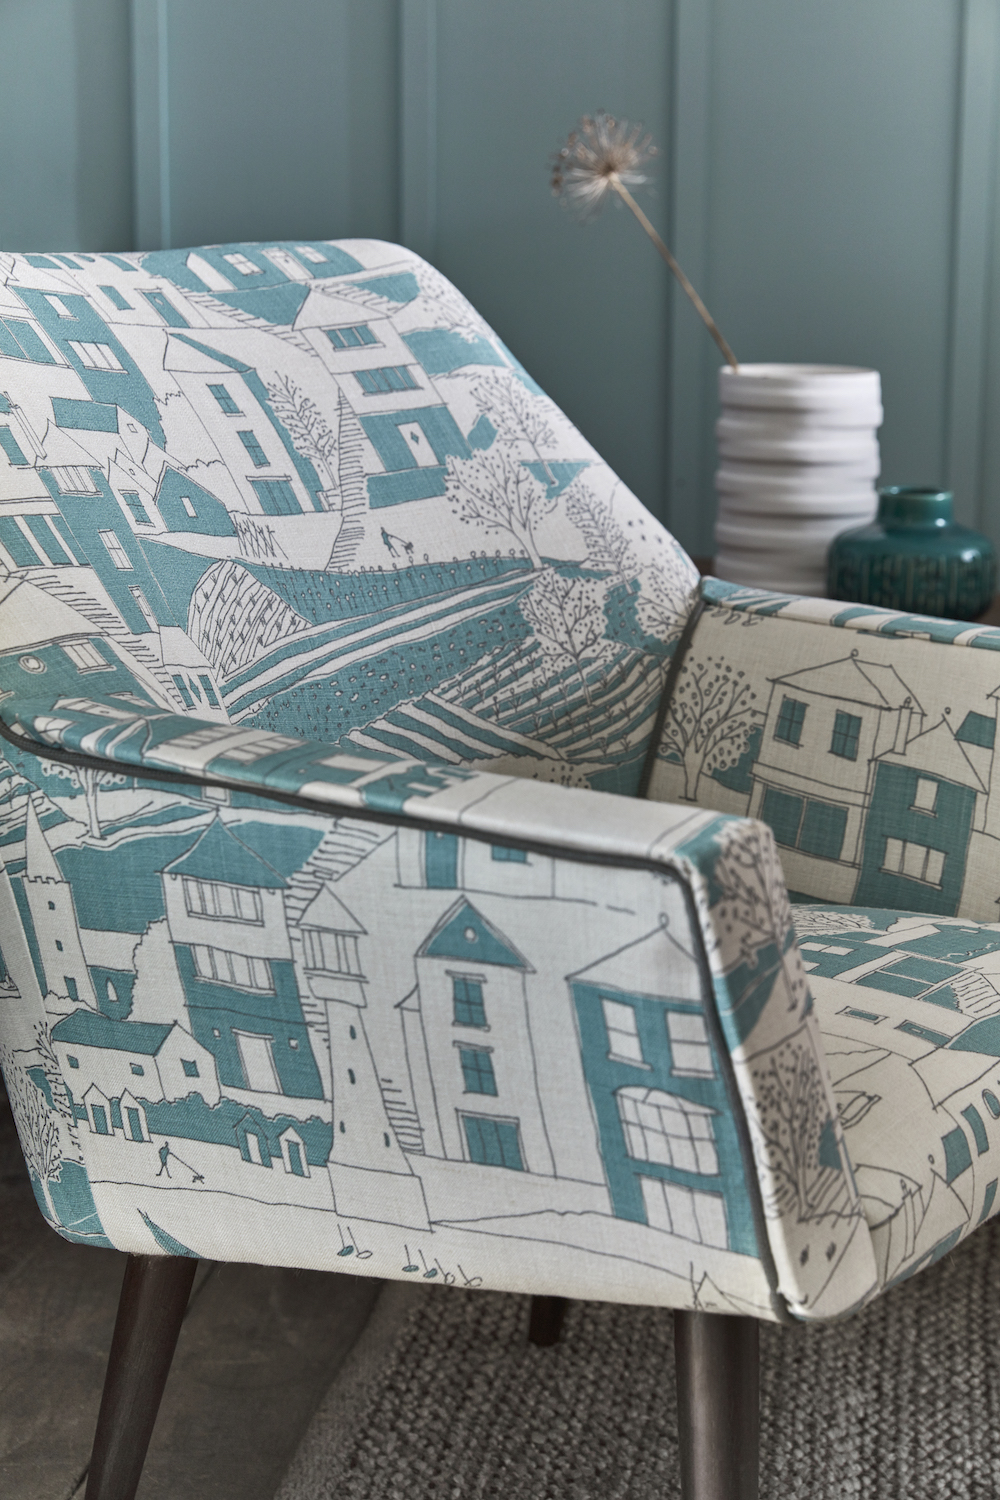 RETRO CHAIR: By the Sea Teal, Charcoal SEA-20-38 £52/mtr piping Plain Linen Charcoal PLAIN-38 £48/mtr. RUG: Handmade Looped by Scumble Goosie £49 each. PAINT: Brighton 203 by Little Greene Paint Company £42 per 2.5 ltr.